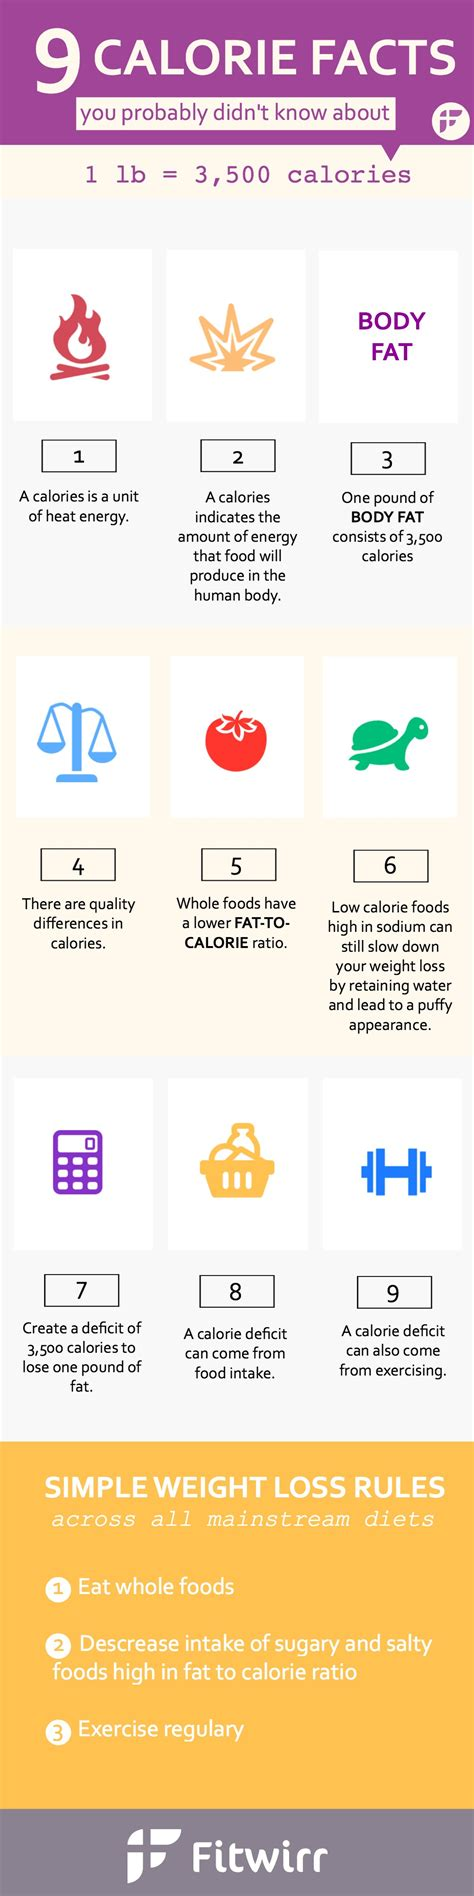 how many calories are in a pound